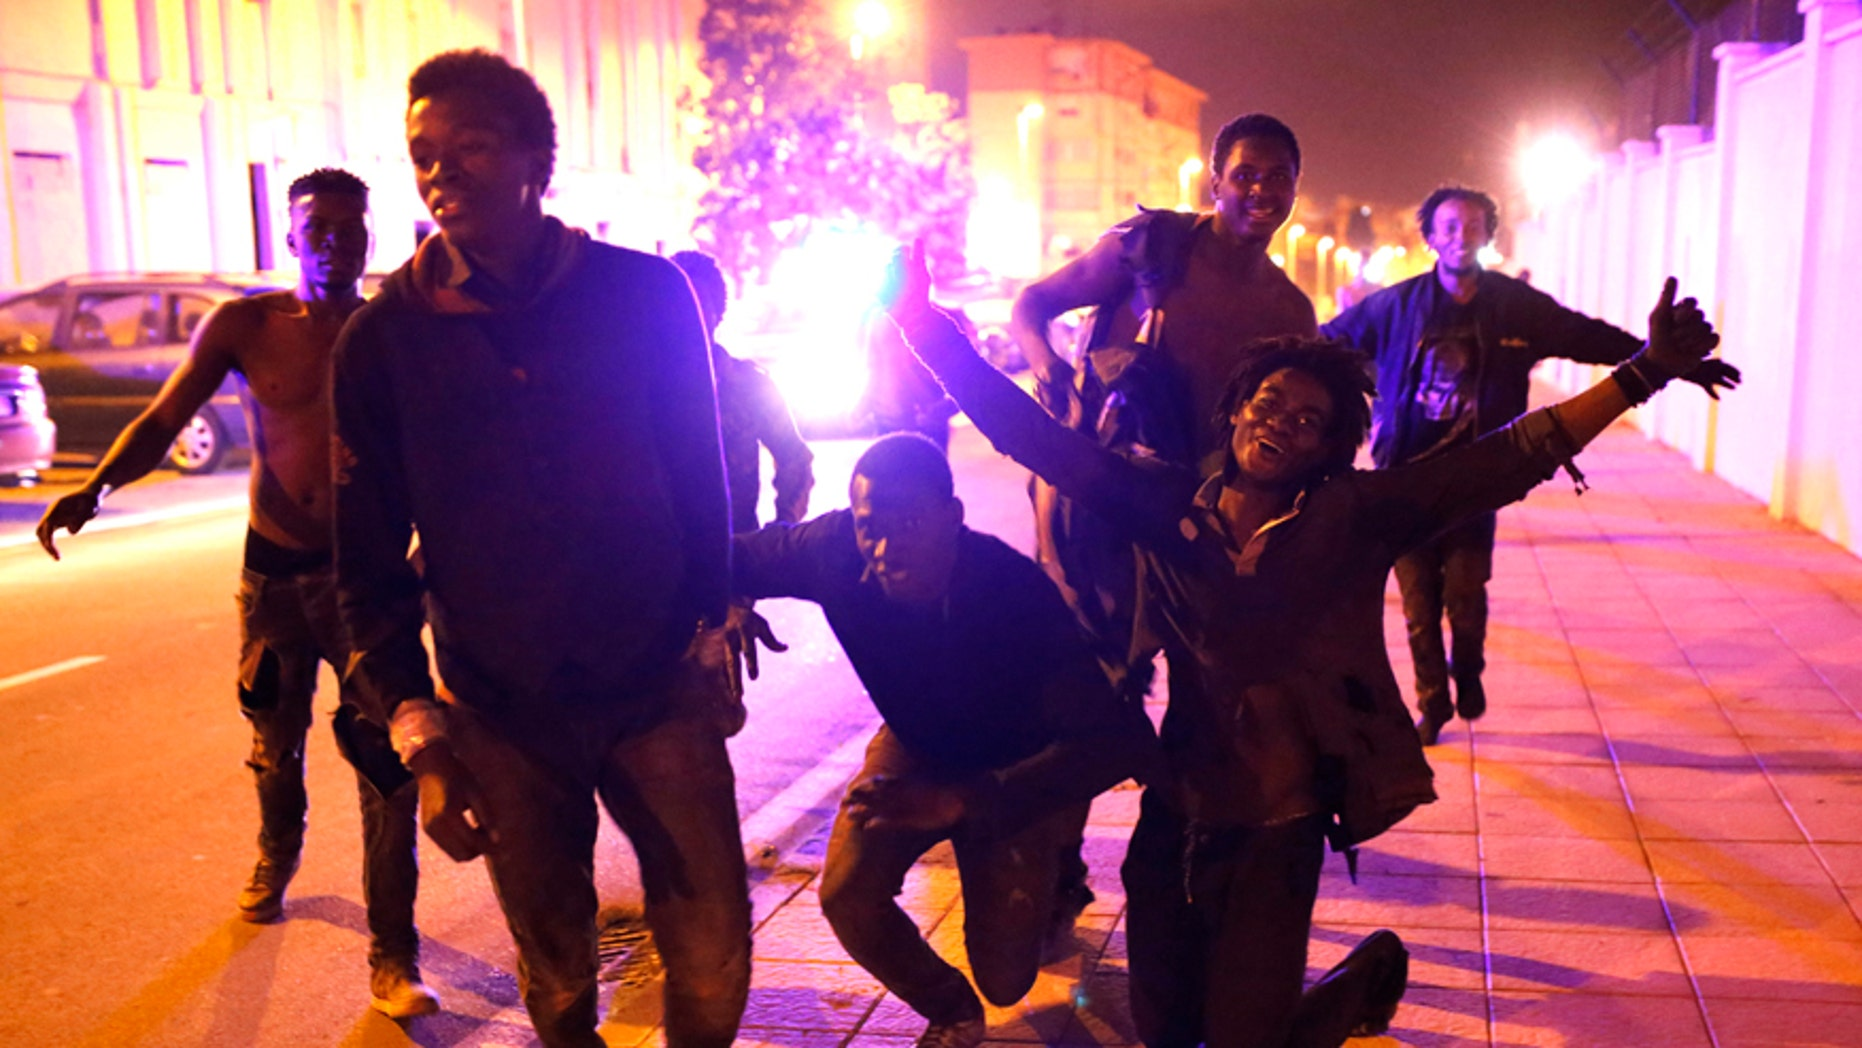 Migrants react after storming a fence to enter the Spanish enclave of Ceuta, Spain, Friday, Feb. 17, 2017.